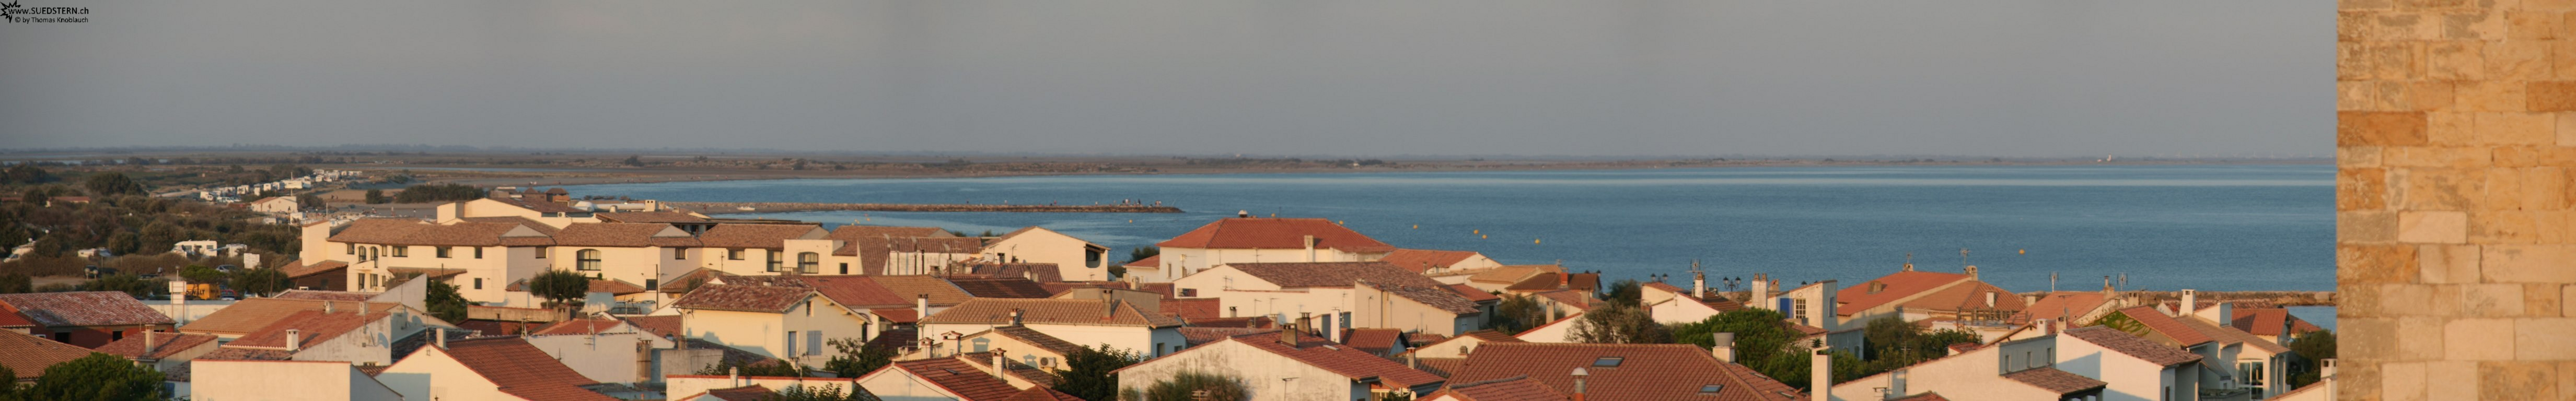 2008-08-28 - Panorama from st. maries de la mer made on top of the churchs rooftop, france